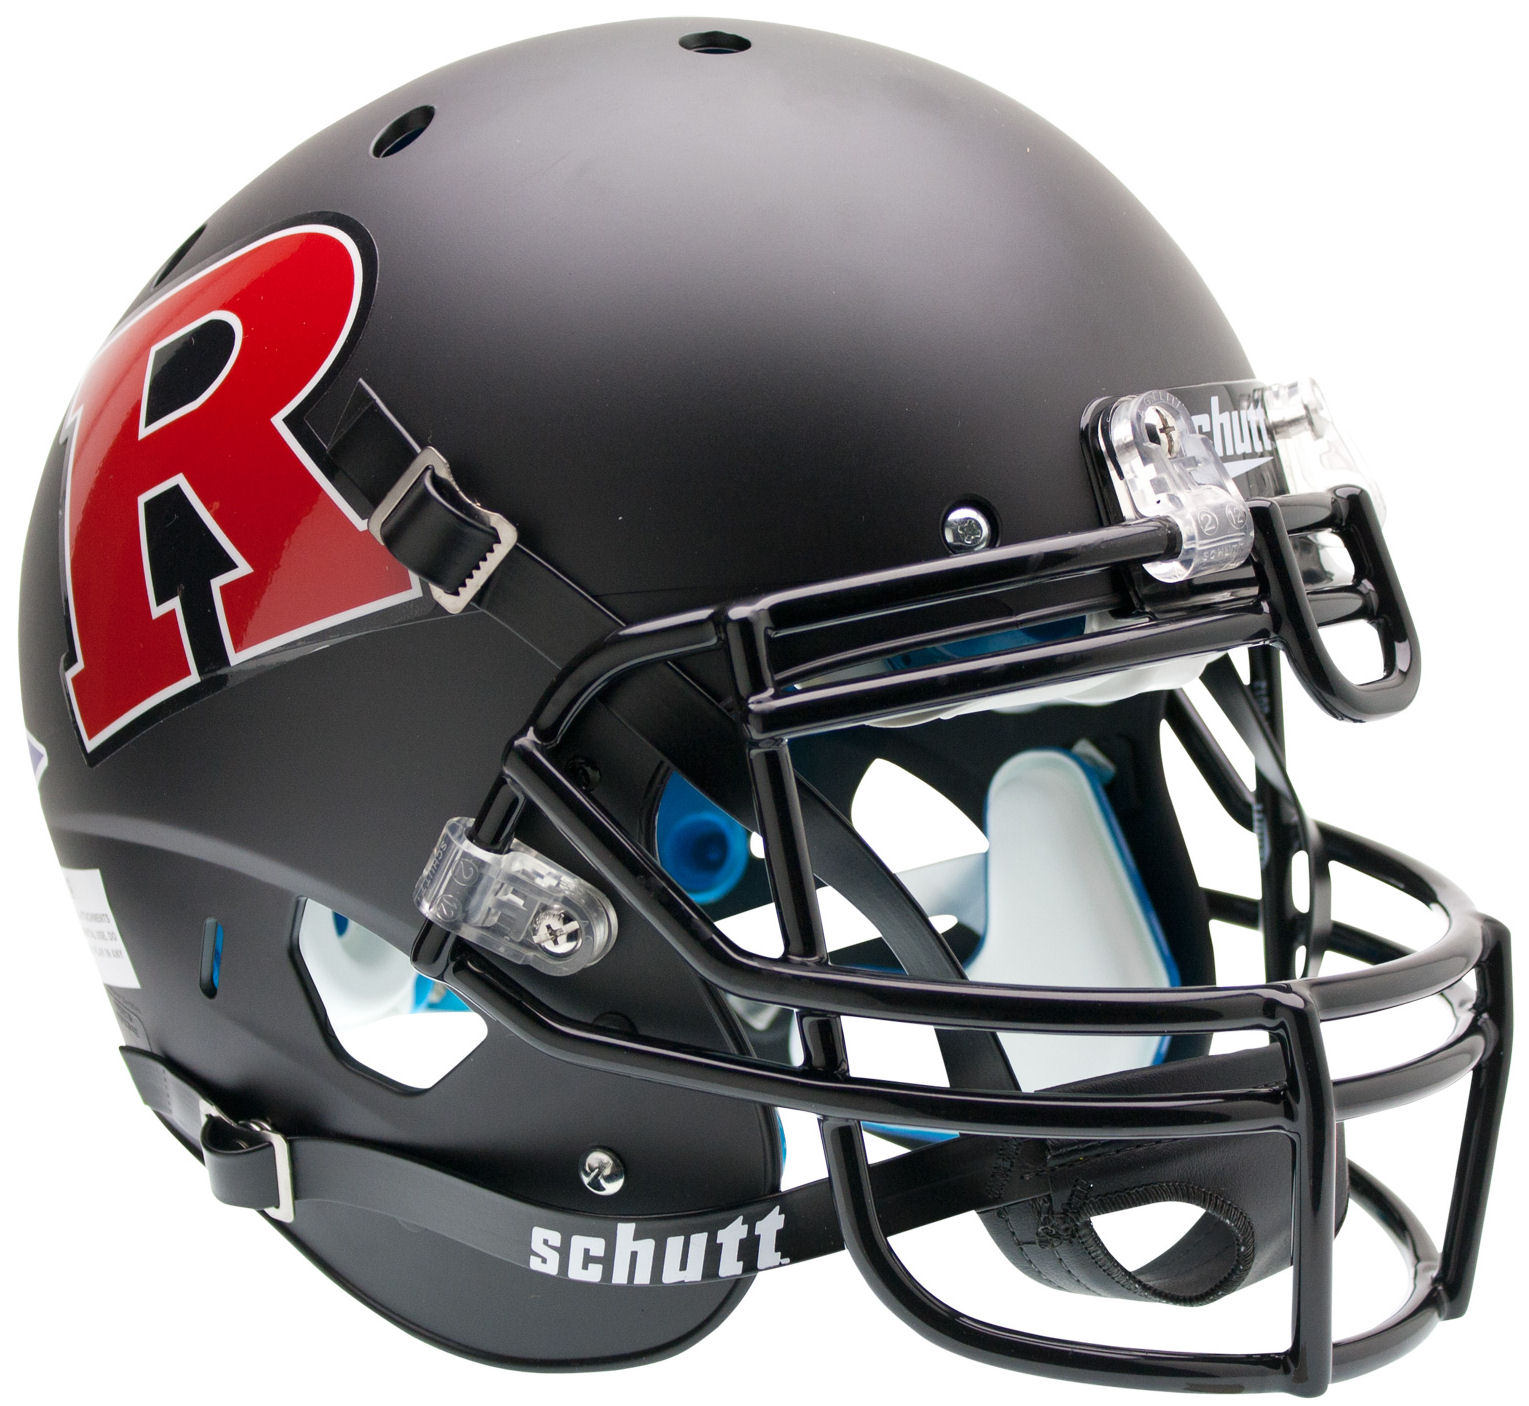 Rutgers Scarlet Knights Authentic College XP Football Helmet Schutt <B>Matte Black Red R</B>